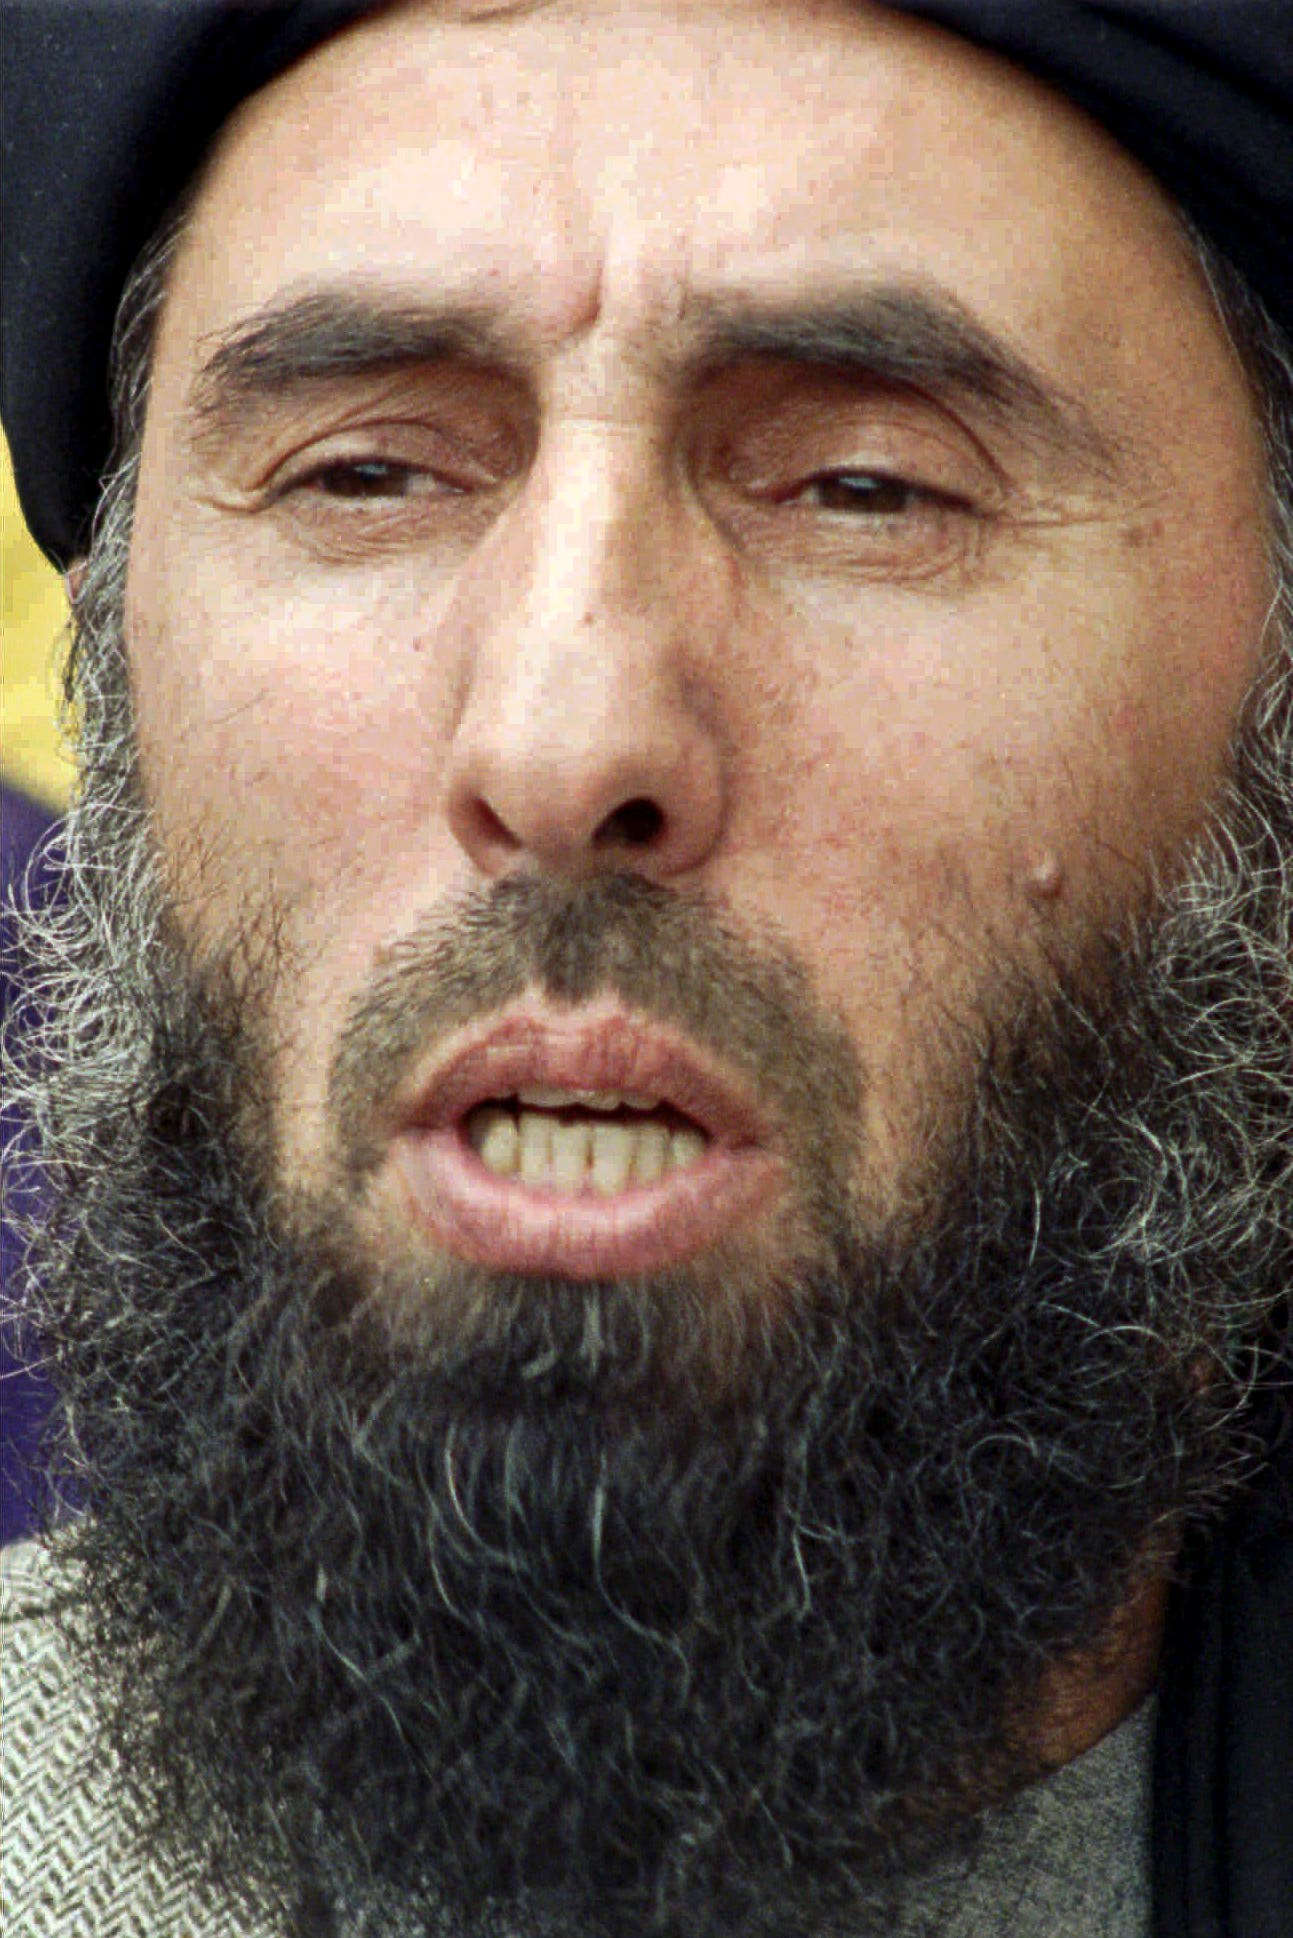 This Feb. 13, 1996, file photo shows Gulbuddin Hekmatyar, Afghan rebel leader and chief of the insurgent group Hezb-e-Islami Gulbuddin, speaking at a news conference in Islamabad, Pakistan.